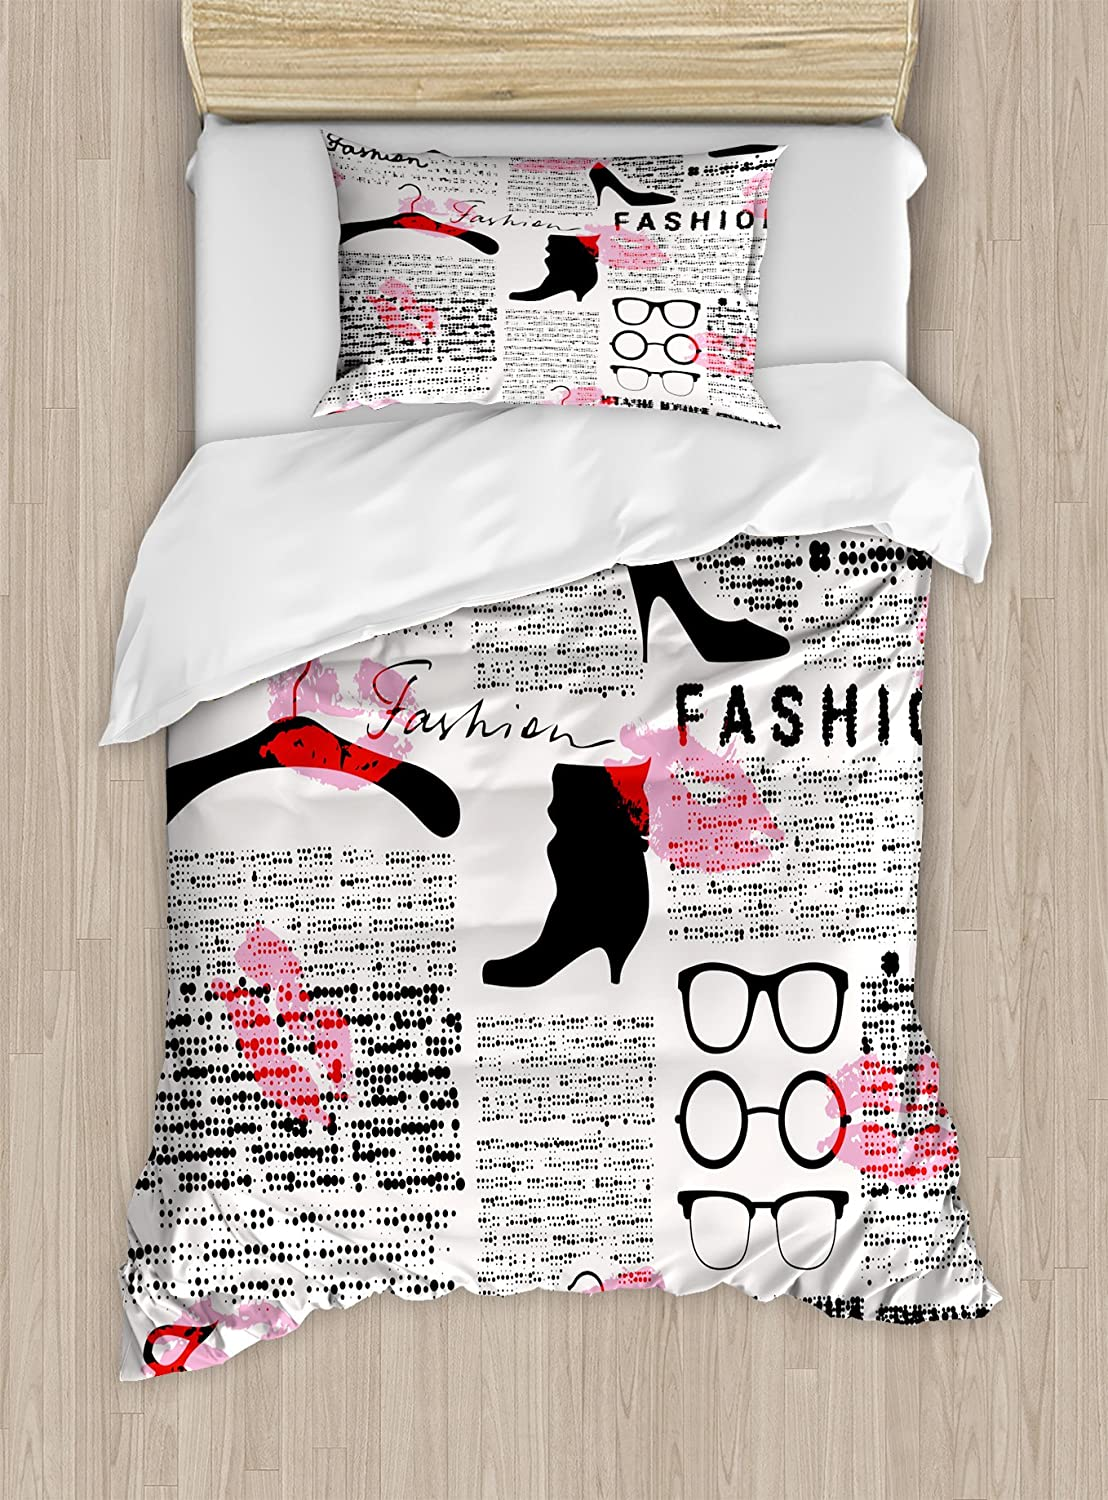 Ambesonne Old Newspaper Duvet Cover Set Twin Size, Fashion Elements Kisses Lipstick Glasses Shoes Hangers Print, Decorative 2 Piece Bedding Set with 1 Pillow Sham, Scarlet Baby Pink Black